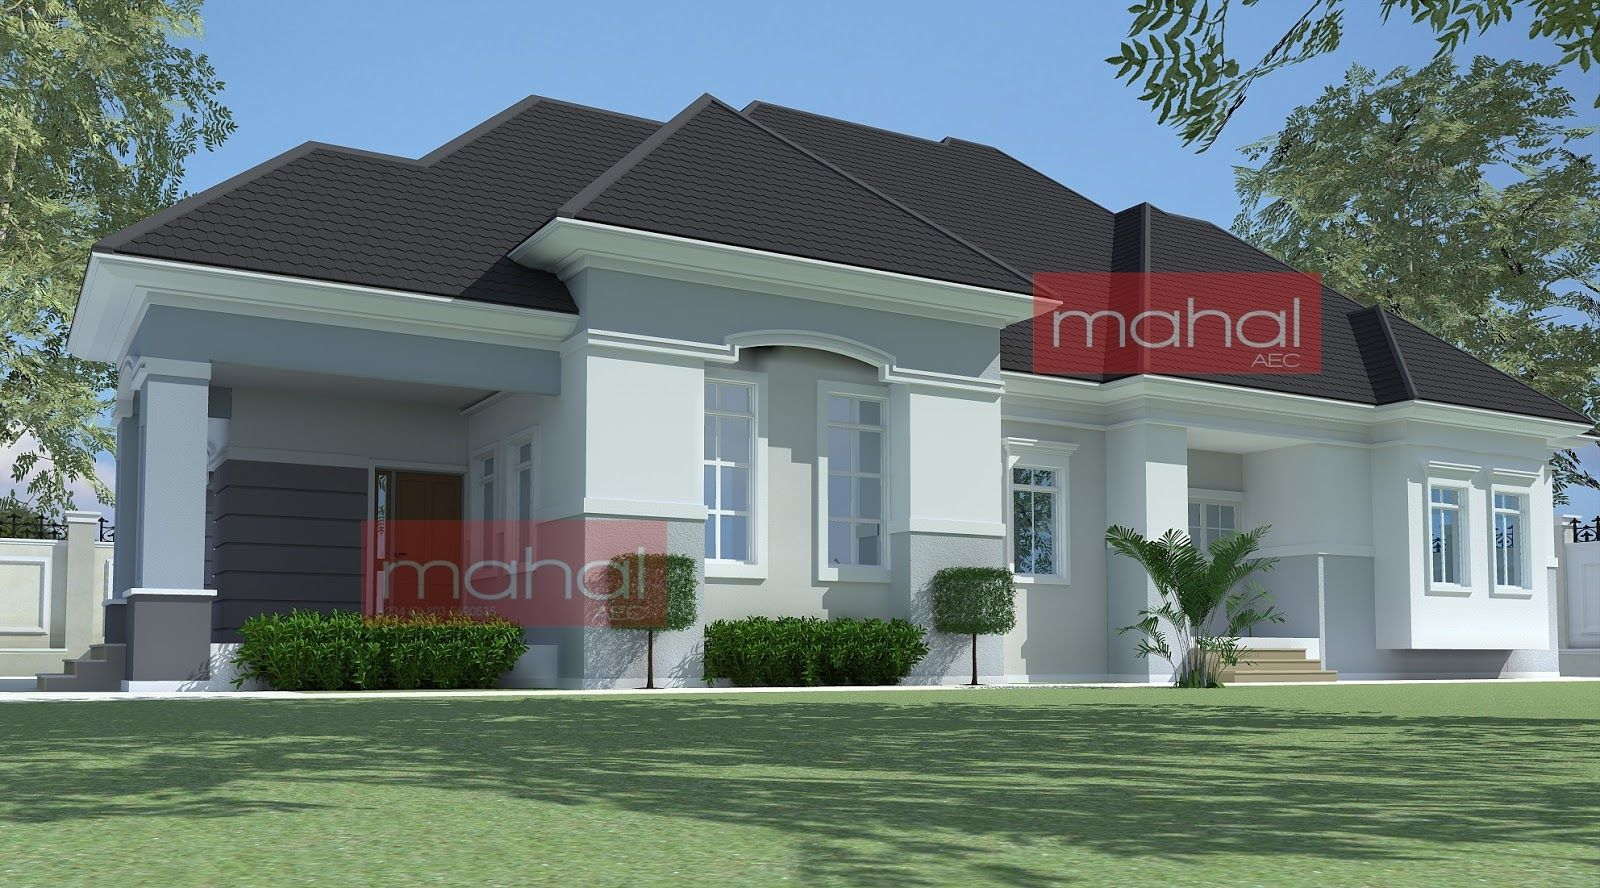 4 bedroom bungalow plan in nigeria 4 bedroom bungalow for Www bungalow design